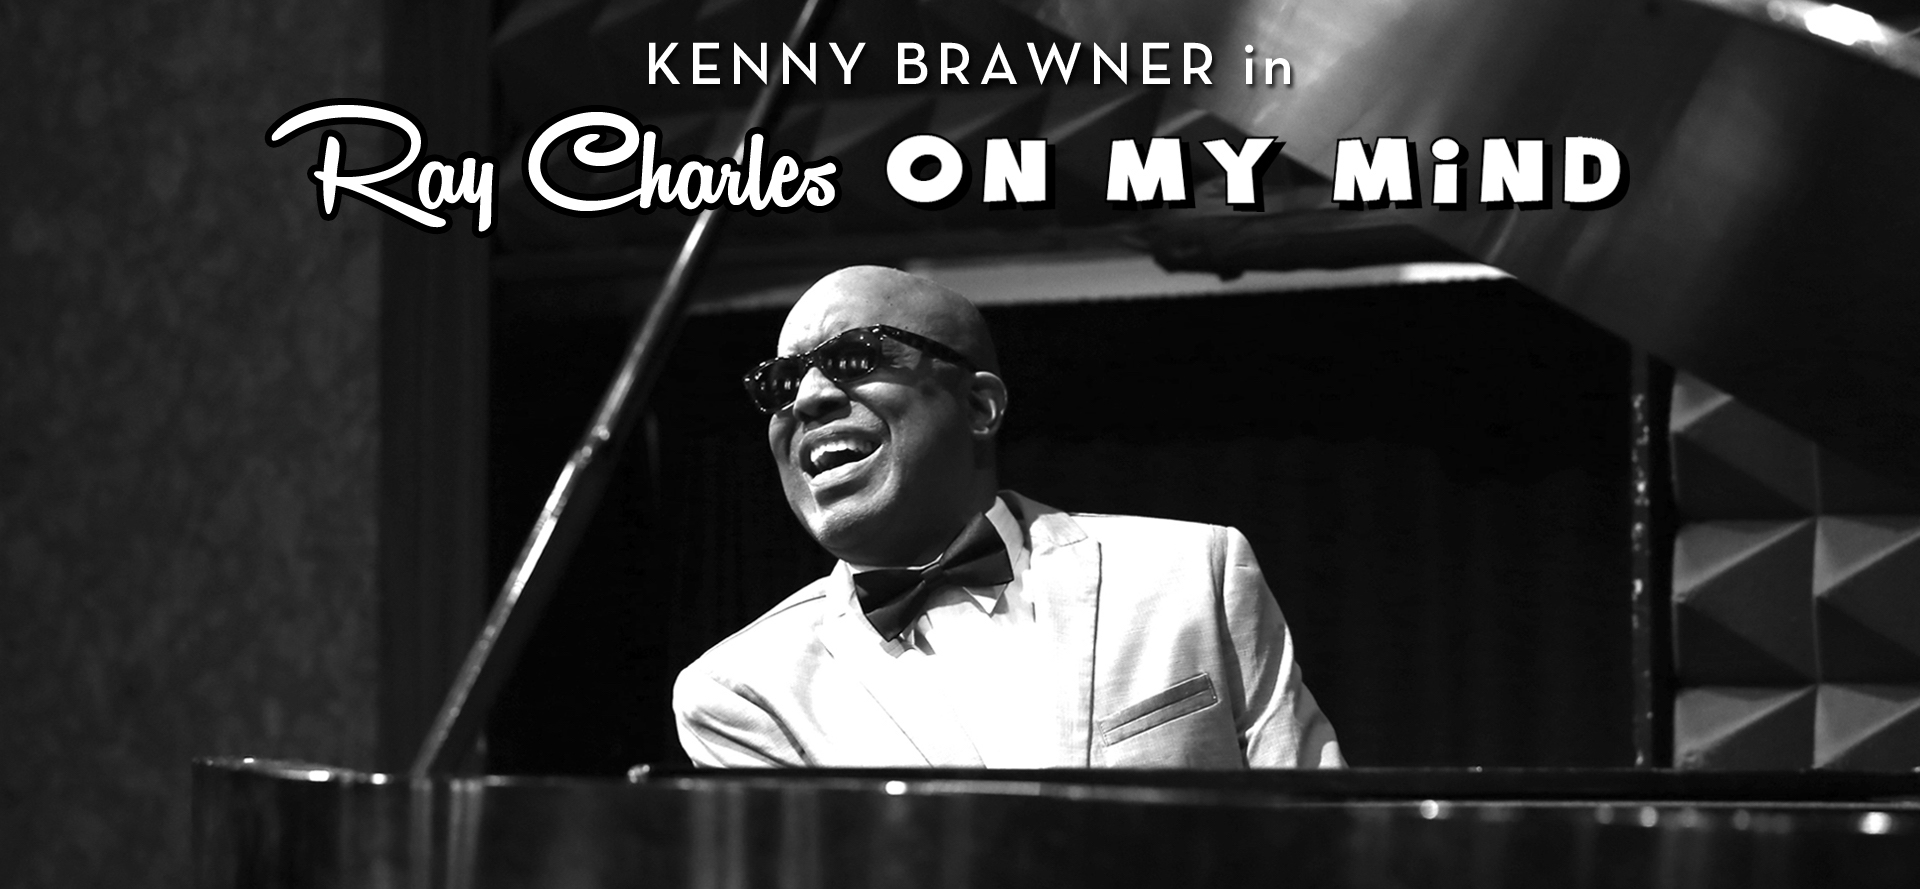 Kenny Brawner: Ray Charles On My Mind